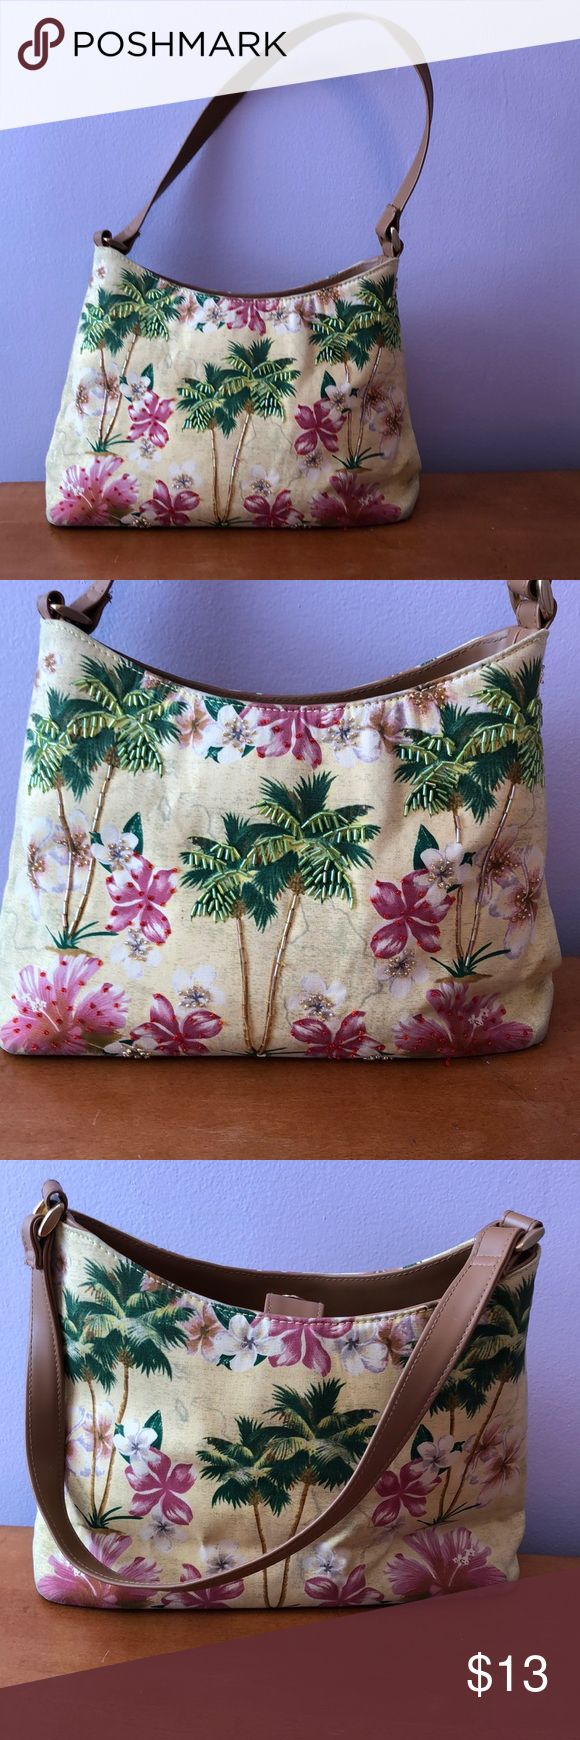 """Spring Bag Not a brand name, just love the colors & detail 13""""X8"""" Lots of sp…"""